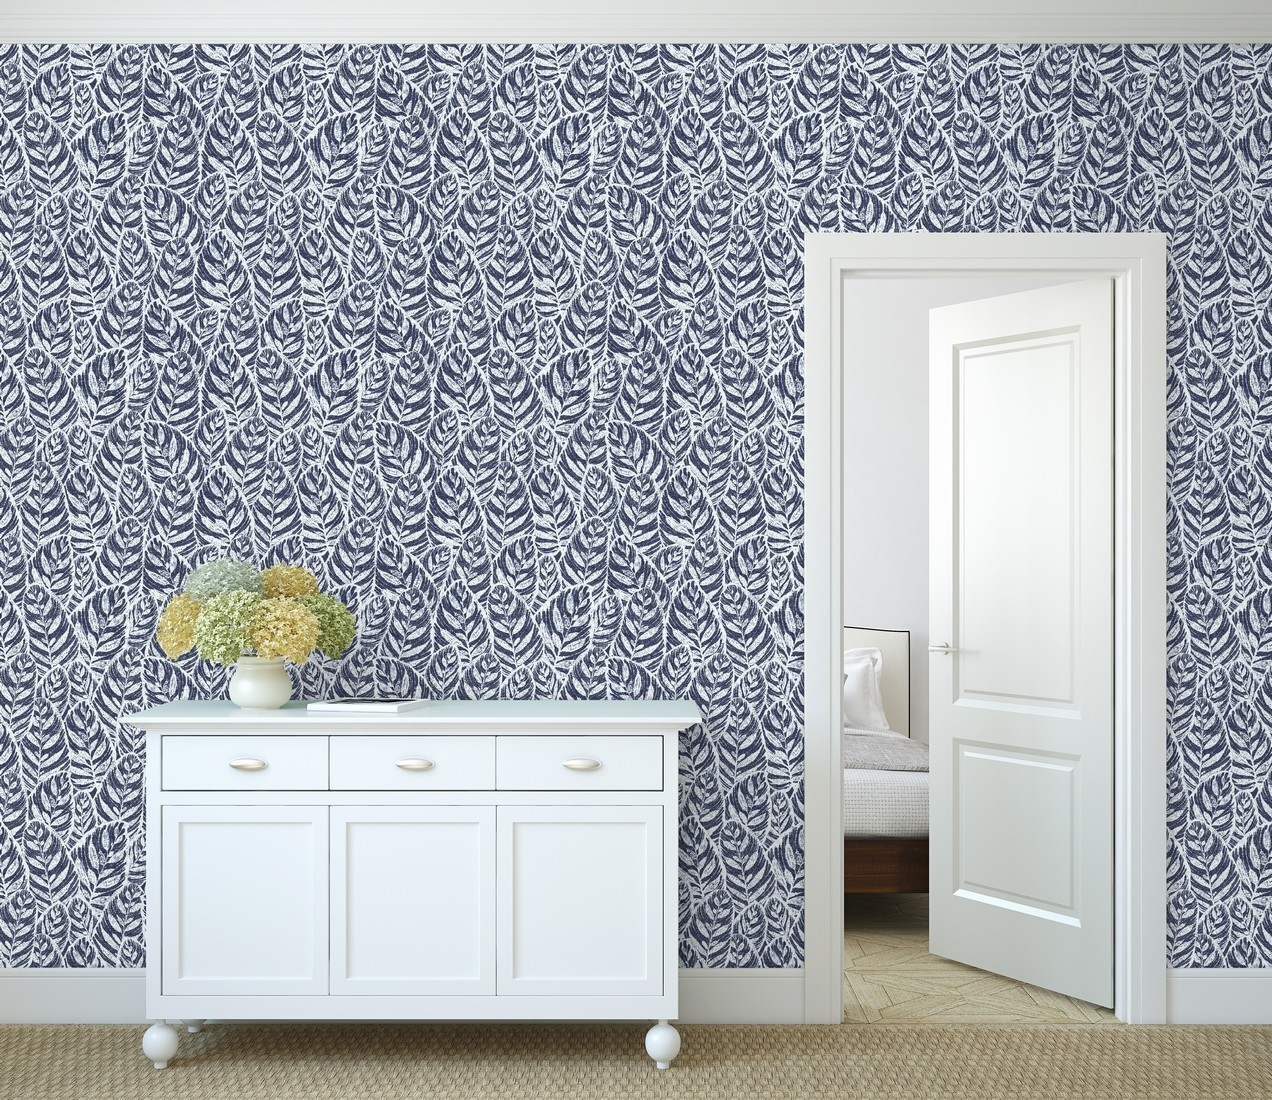 Papel pintado A Street Prints Scott Living FD25921